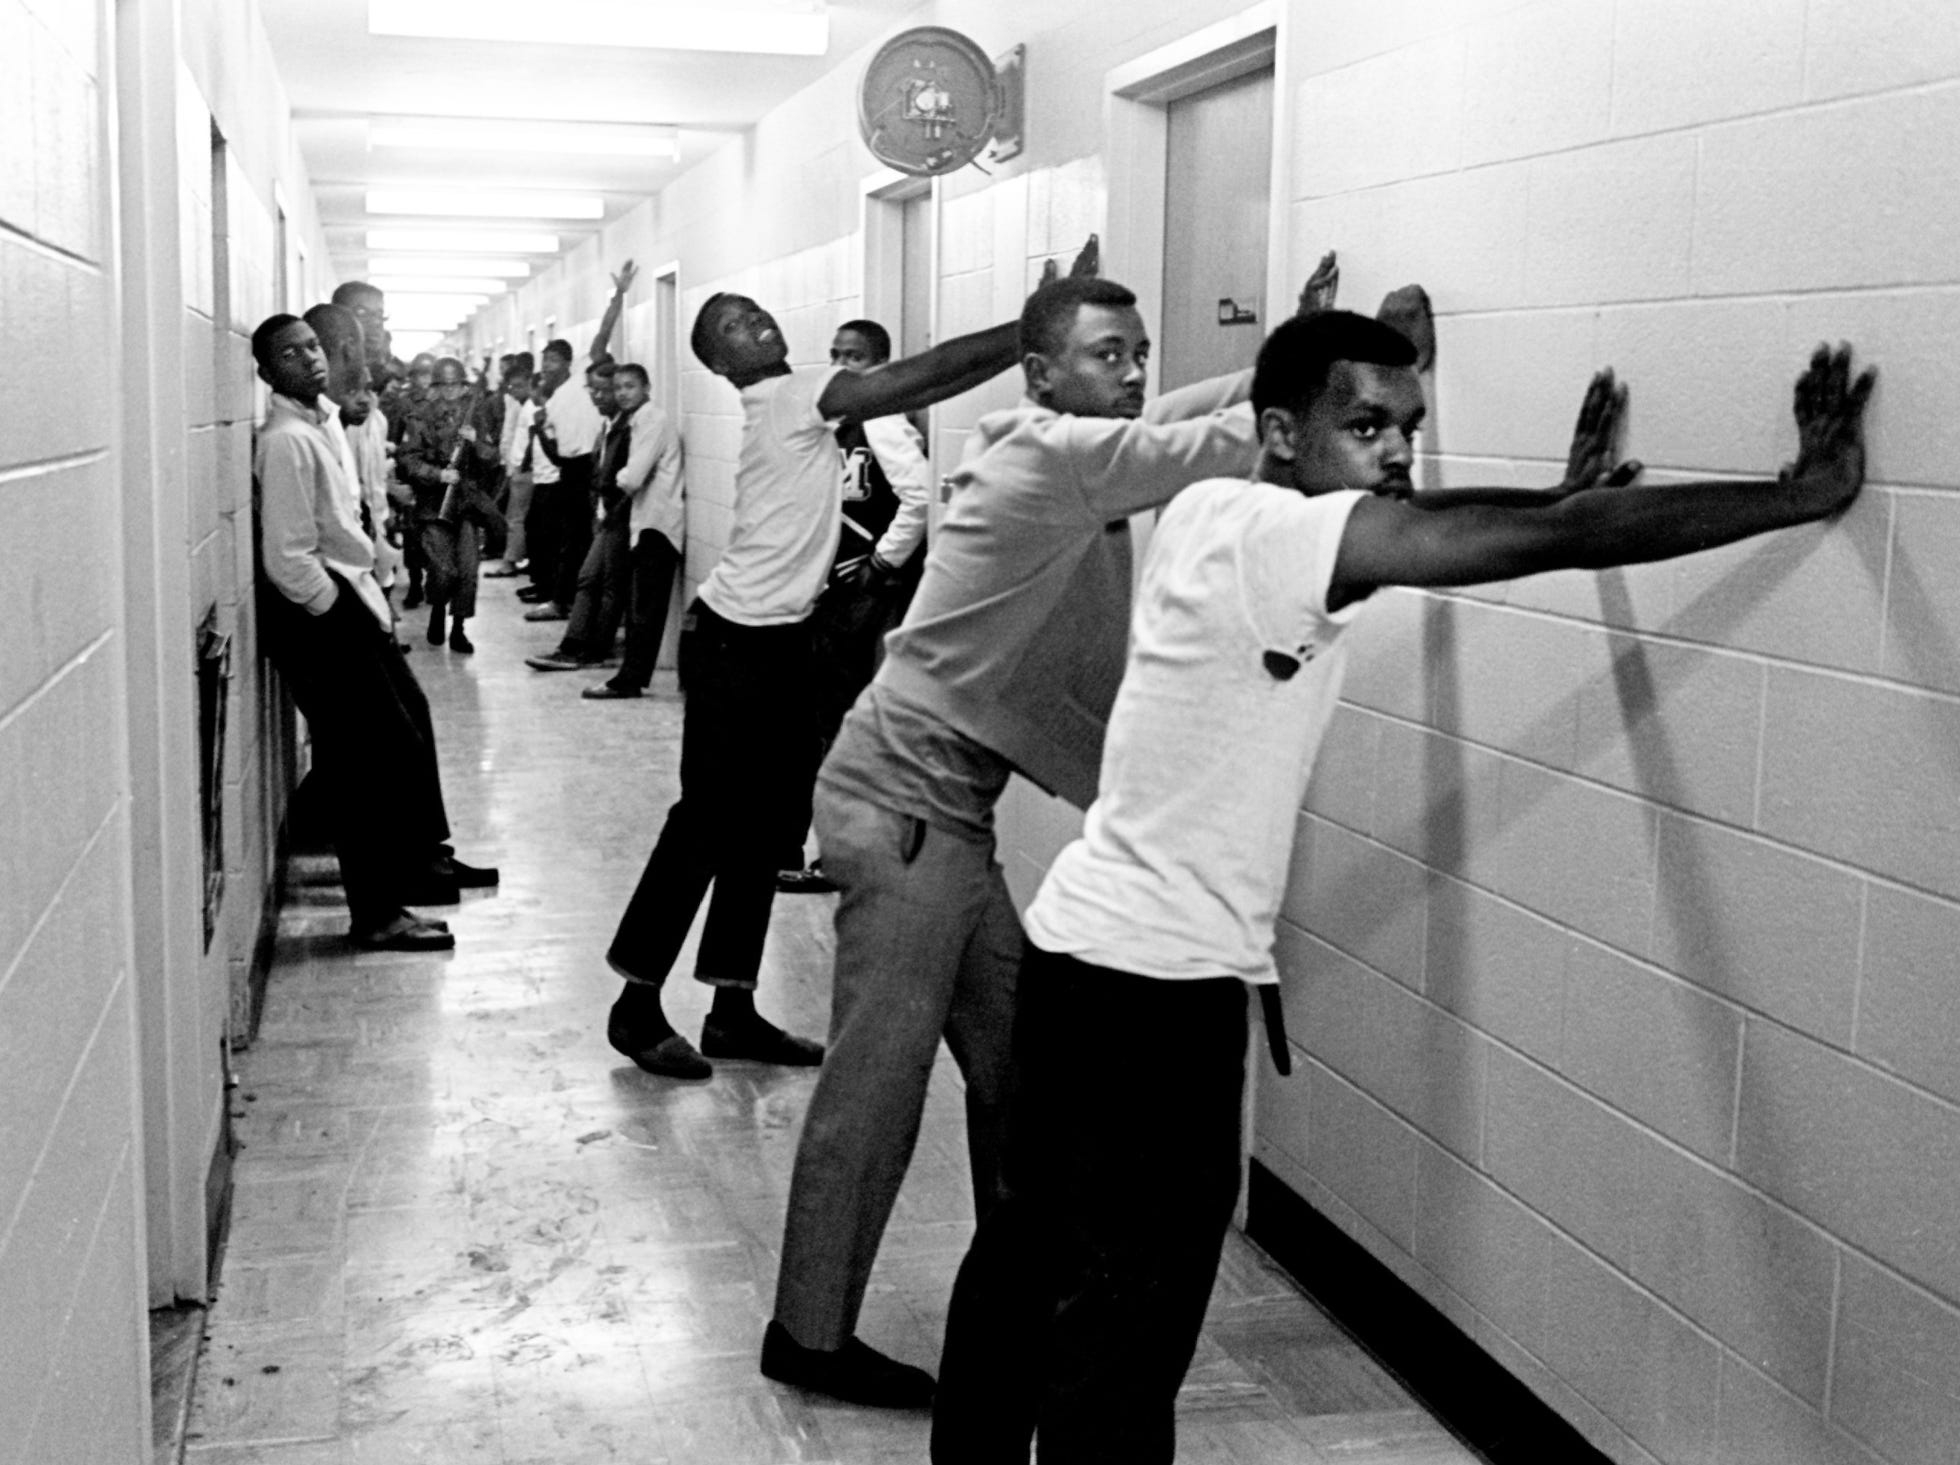 Tennessee A&I State University students line up in the hallway of their campus dorm as National Guardsmen and Metro police officers search them and their rooms in the early hours of April 6, 1968. They searched three campus dorms after police officers had been pinned behind a wall by gunfire.